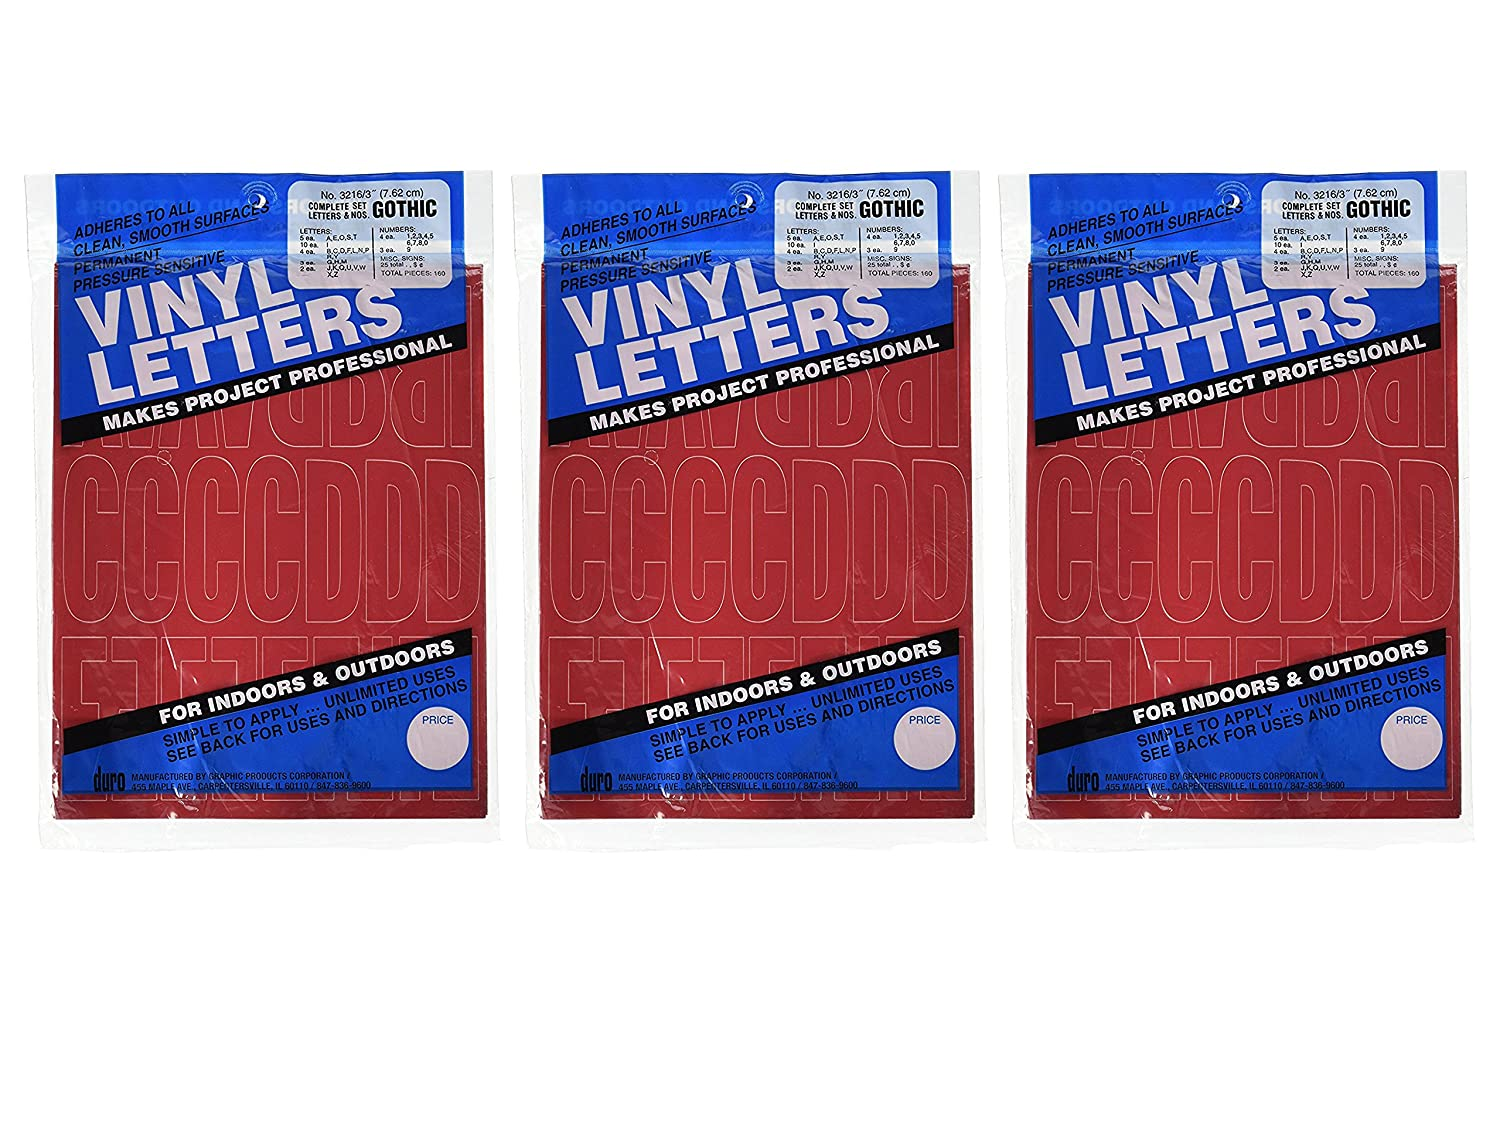 3 Gothic Red Bundled by Maven Gifts Set of 3 Duro Decal Permanent Adhesive Vinyl Letters /& Numbers